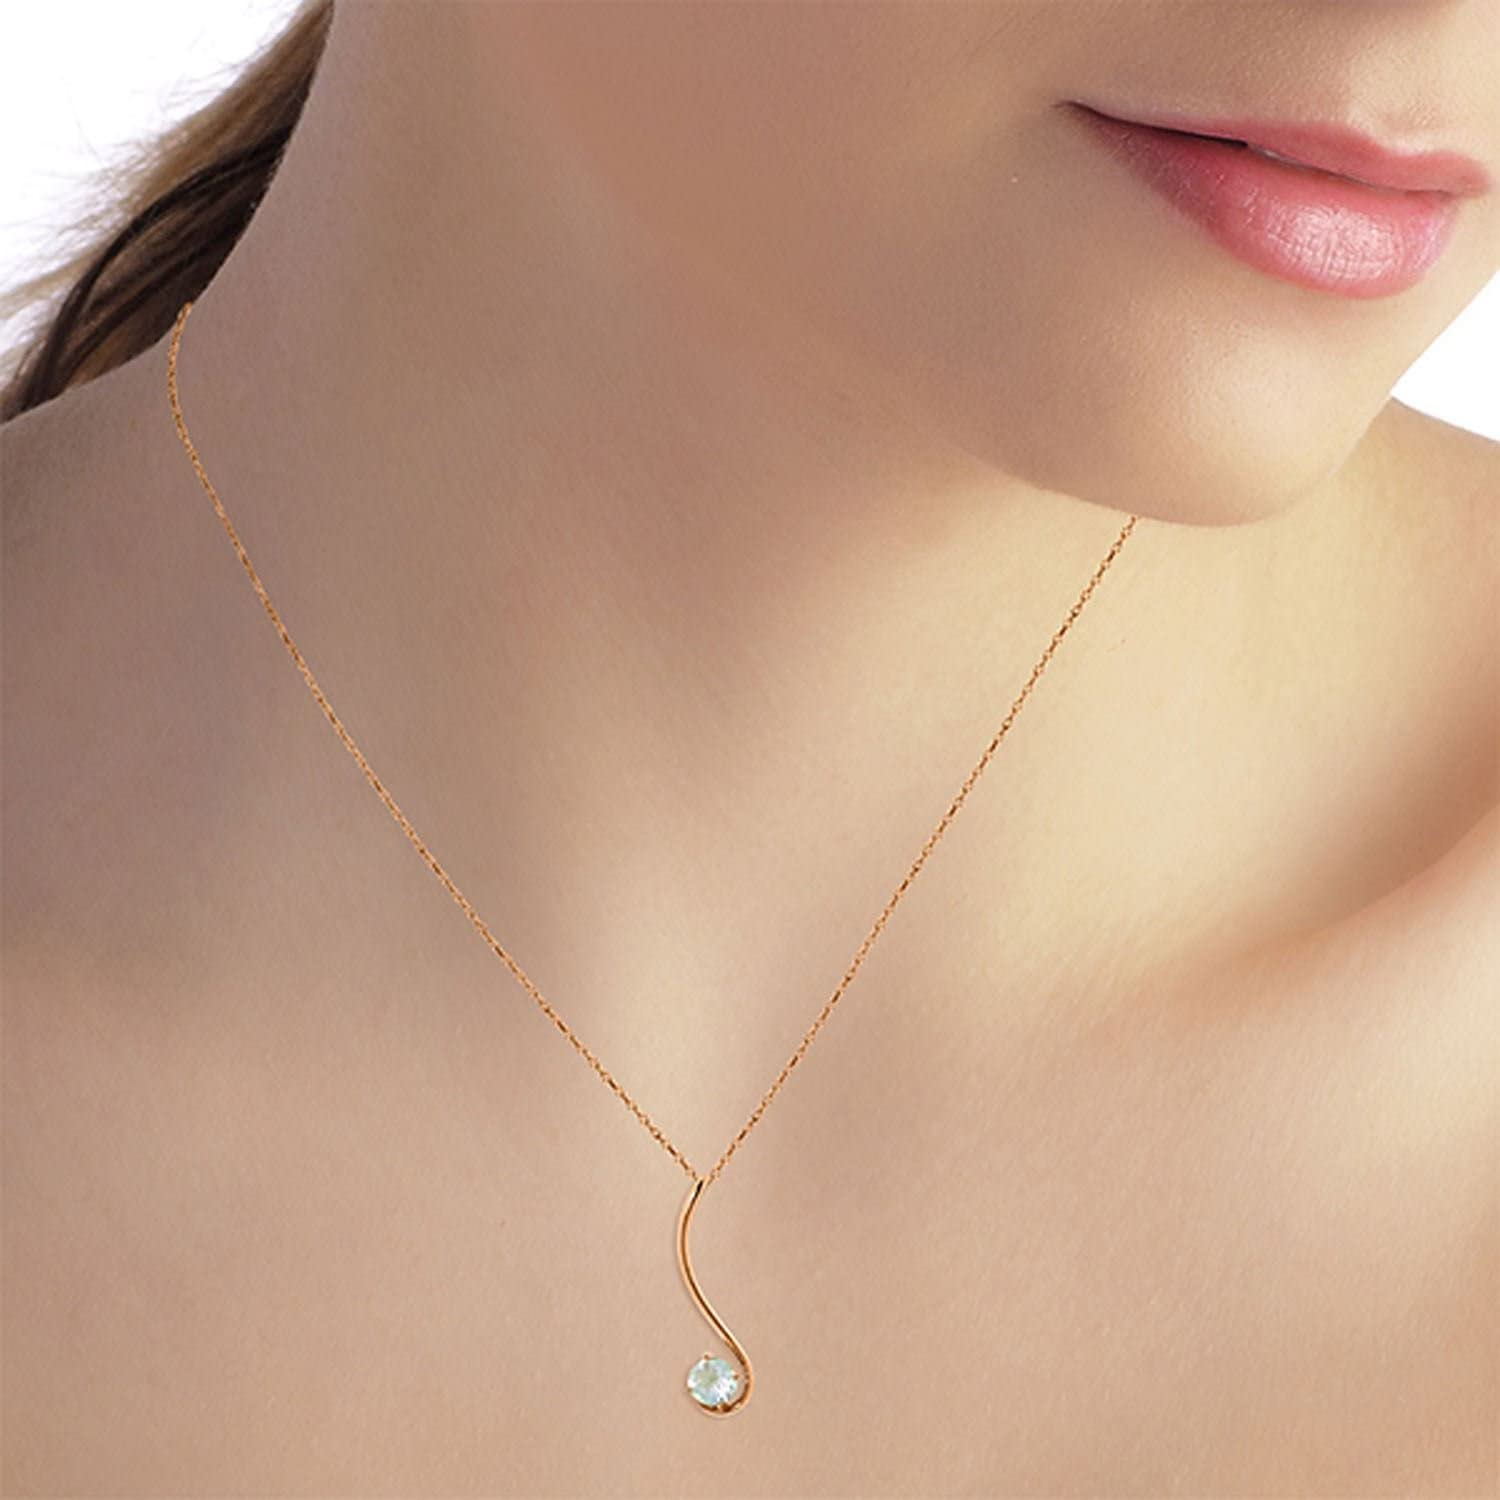 ALARRI 14K Solid Rose Gold Necklace w// Natural Aquamarine with 24 Inch Chain Length